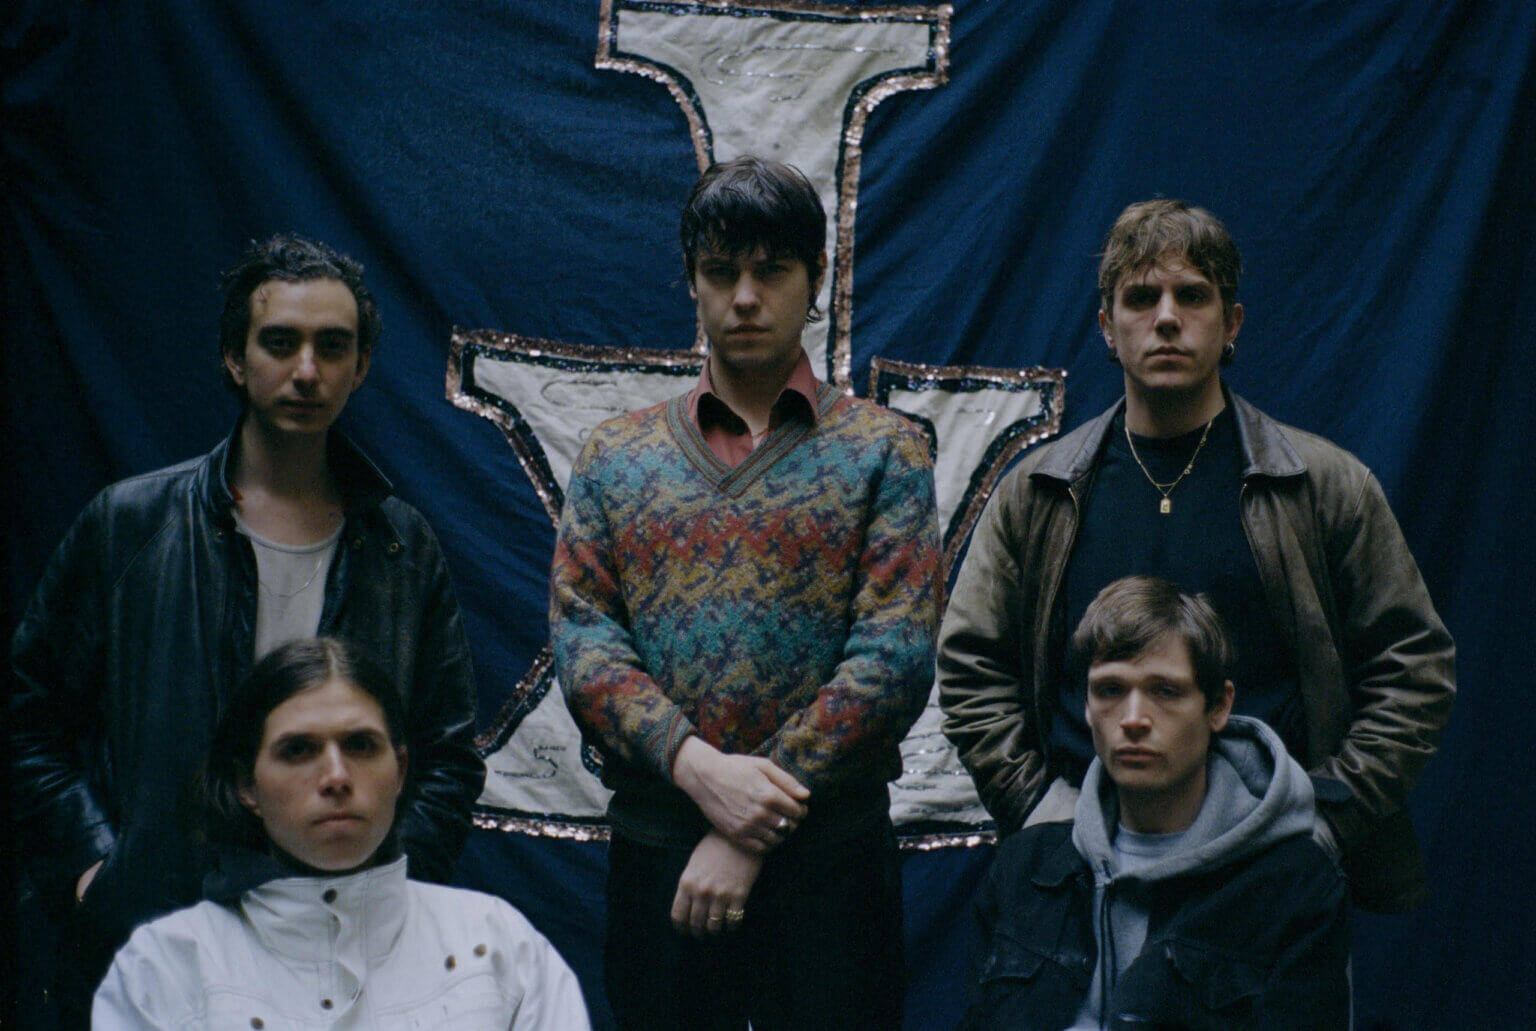 Iceage Continue to grow. Read Jahmeel Russell's interview with Iceage member Jakob Tvilling Pless on the eve of their new release Seek Shelter